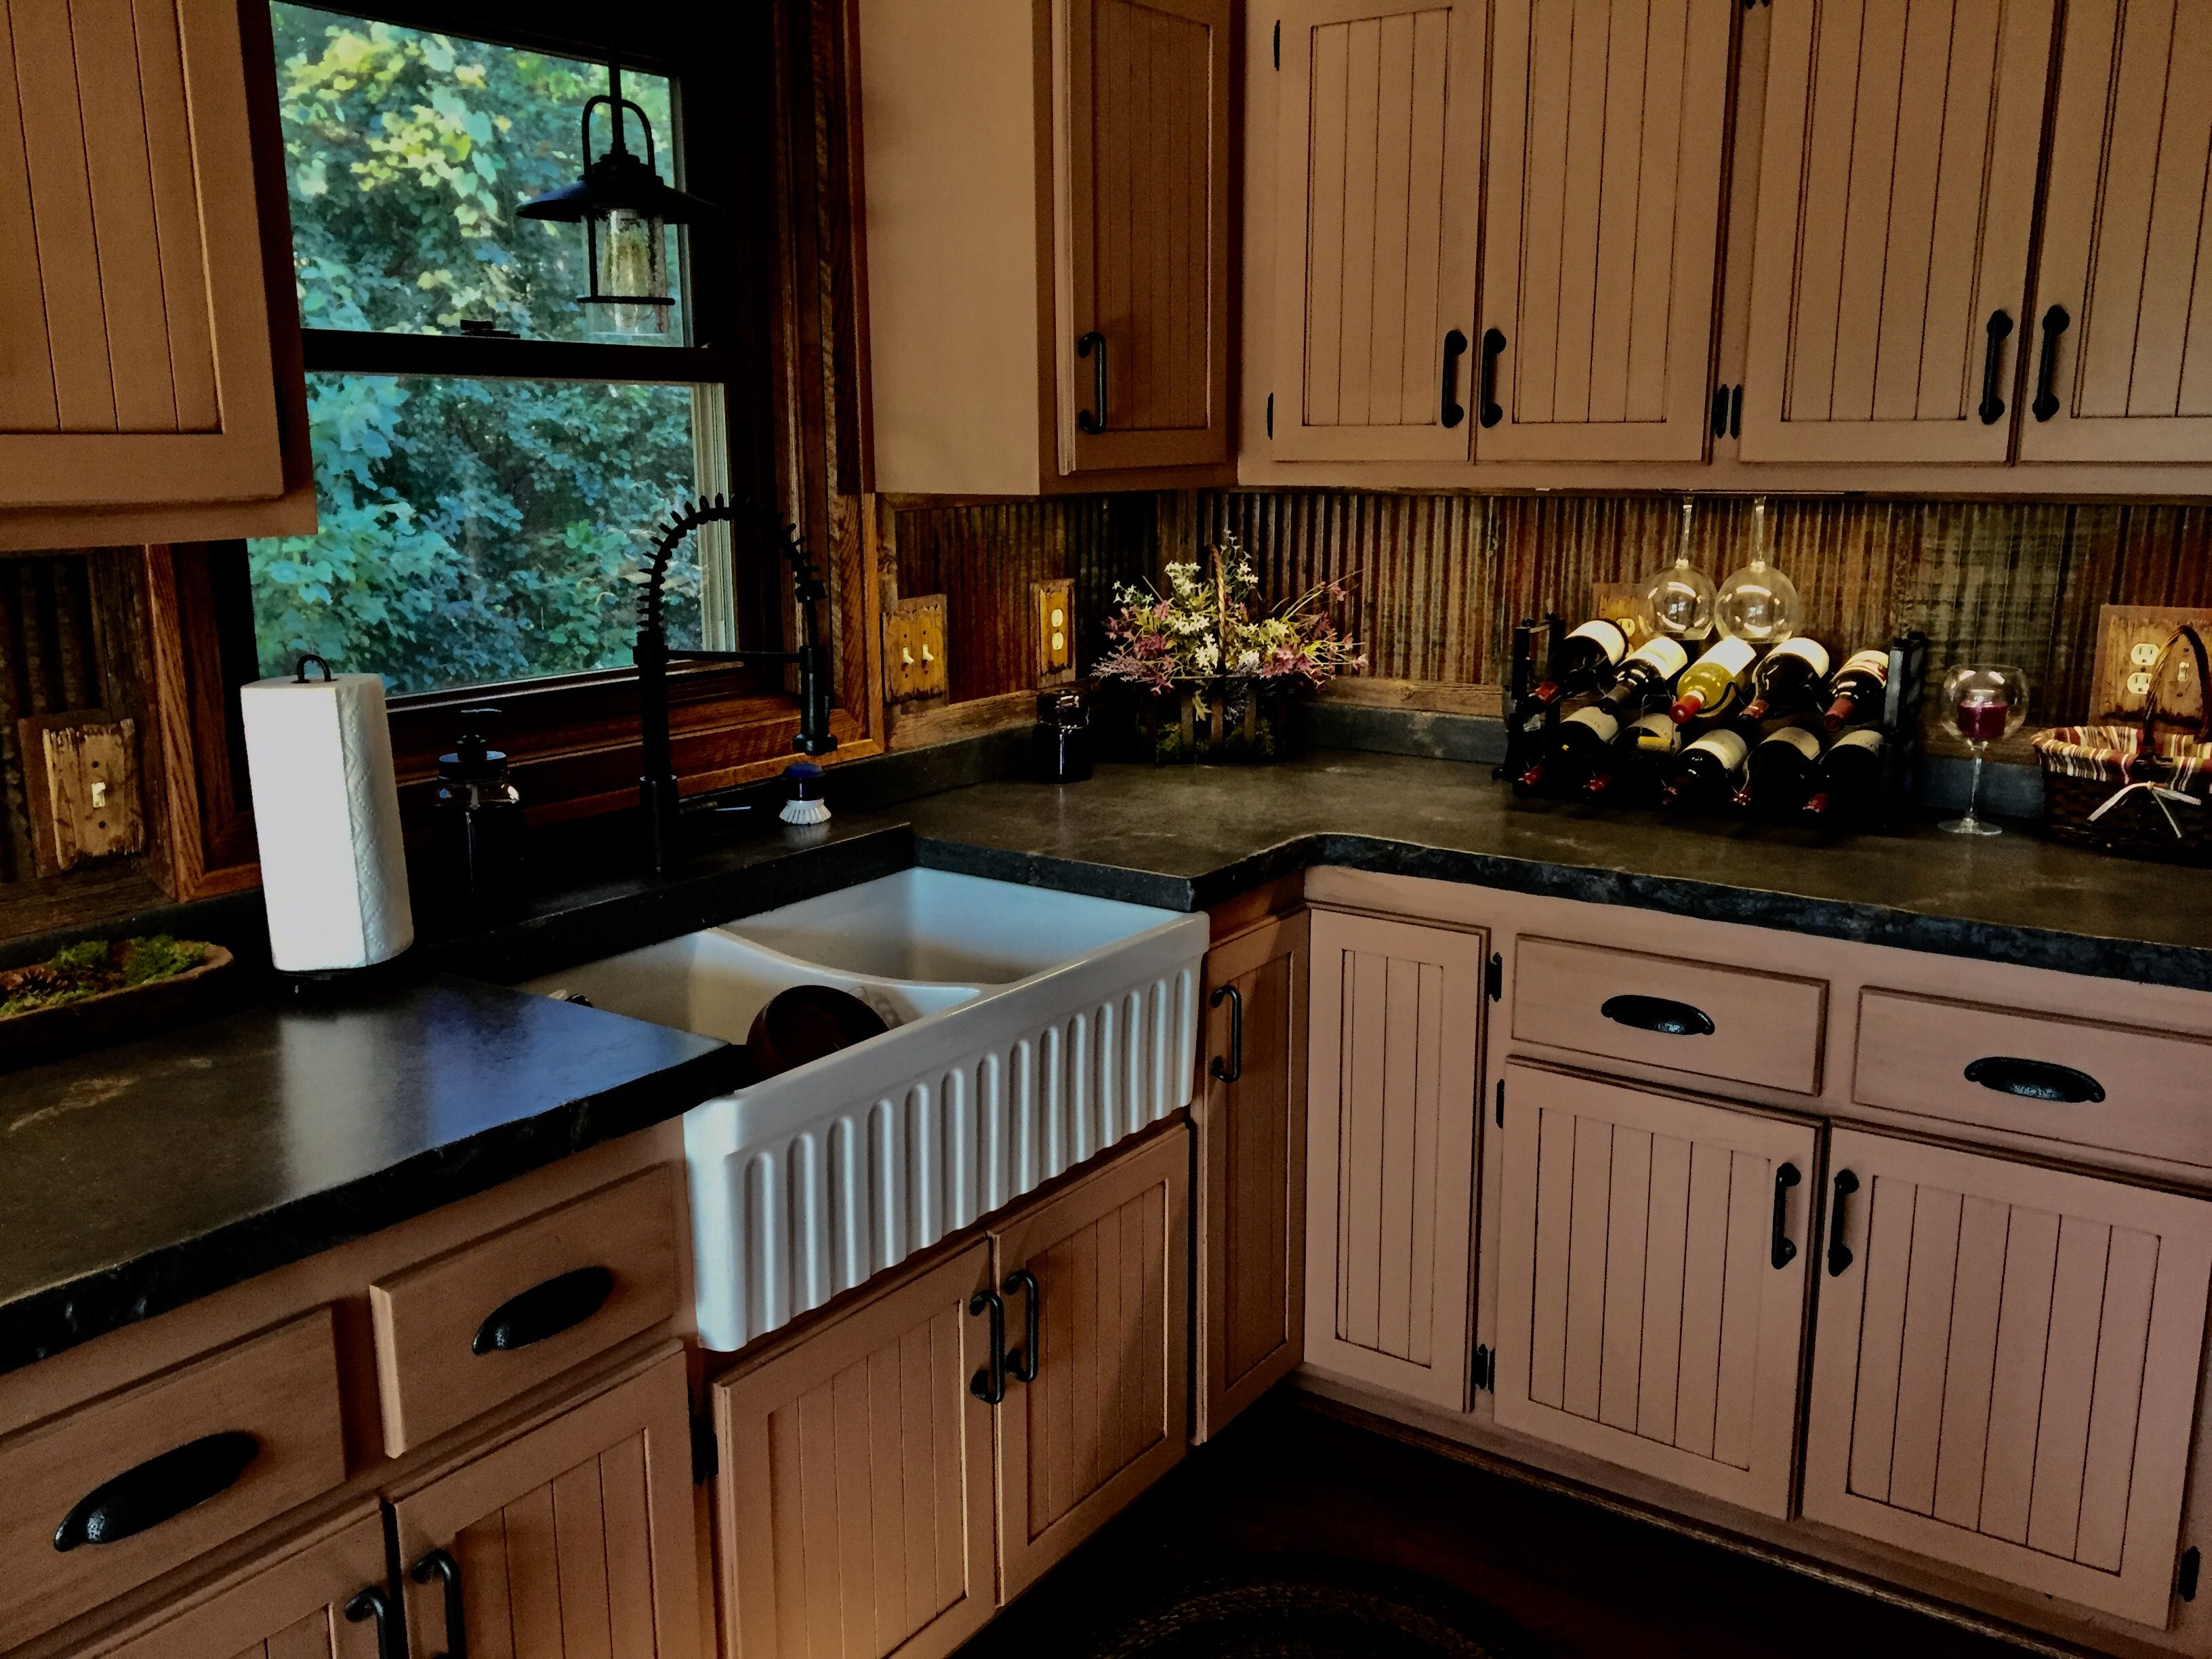 Rusty Corrugated Metal Backsplash And Concrete Counters